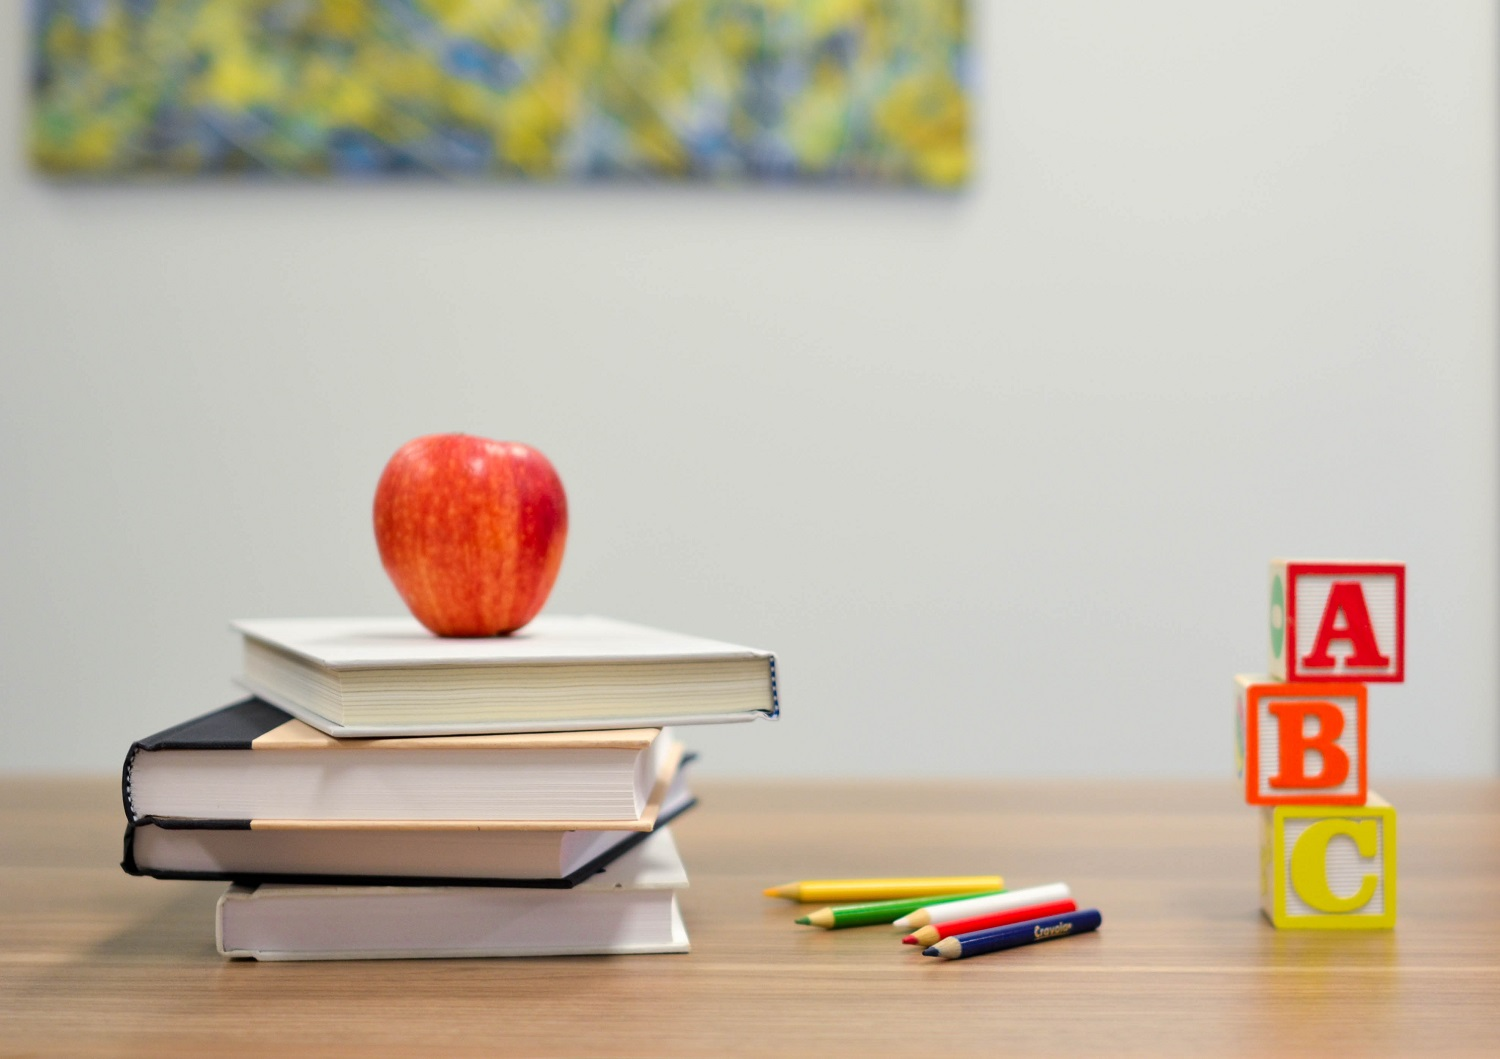 An image of a red apple stacked on top of several books on a wooden desk.